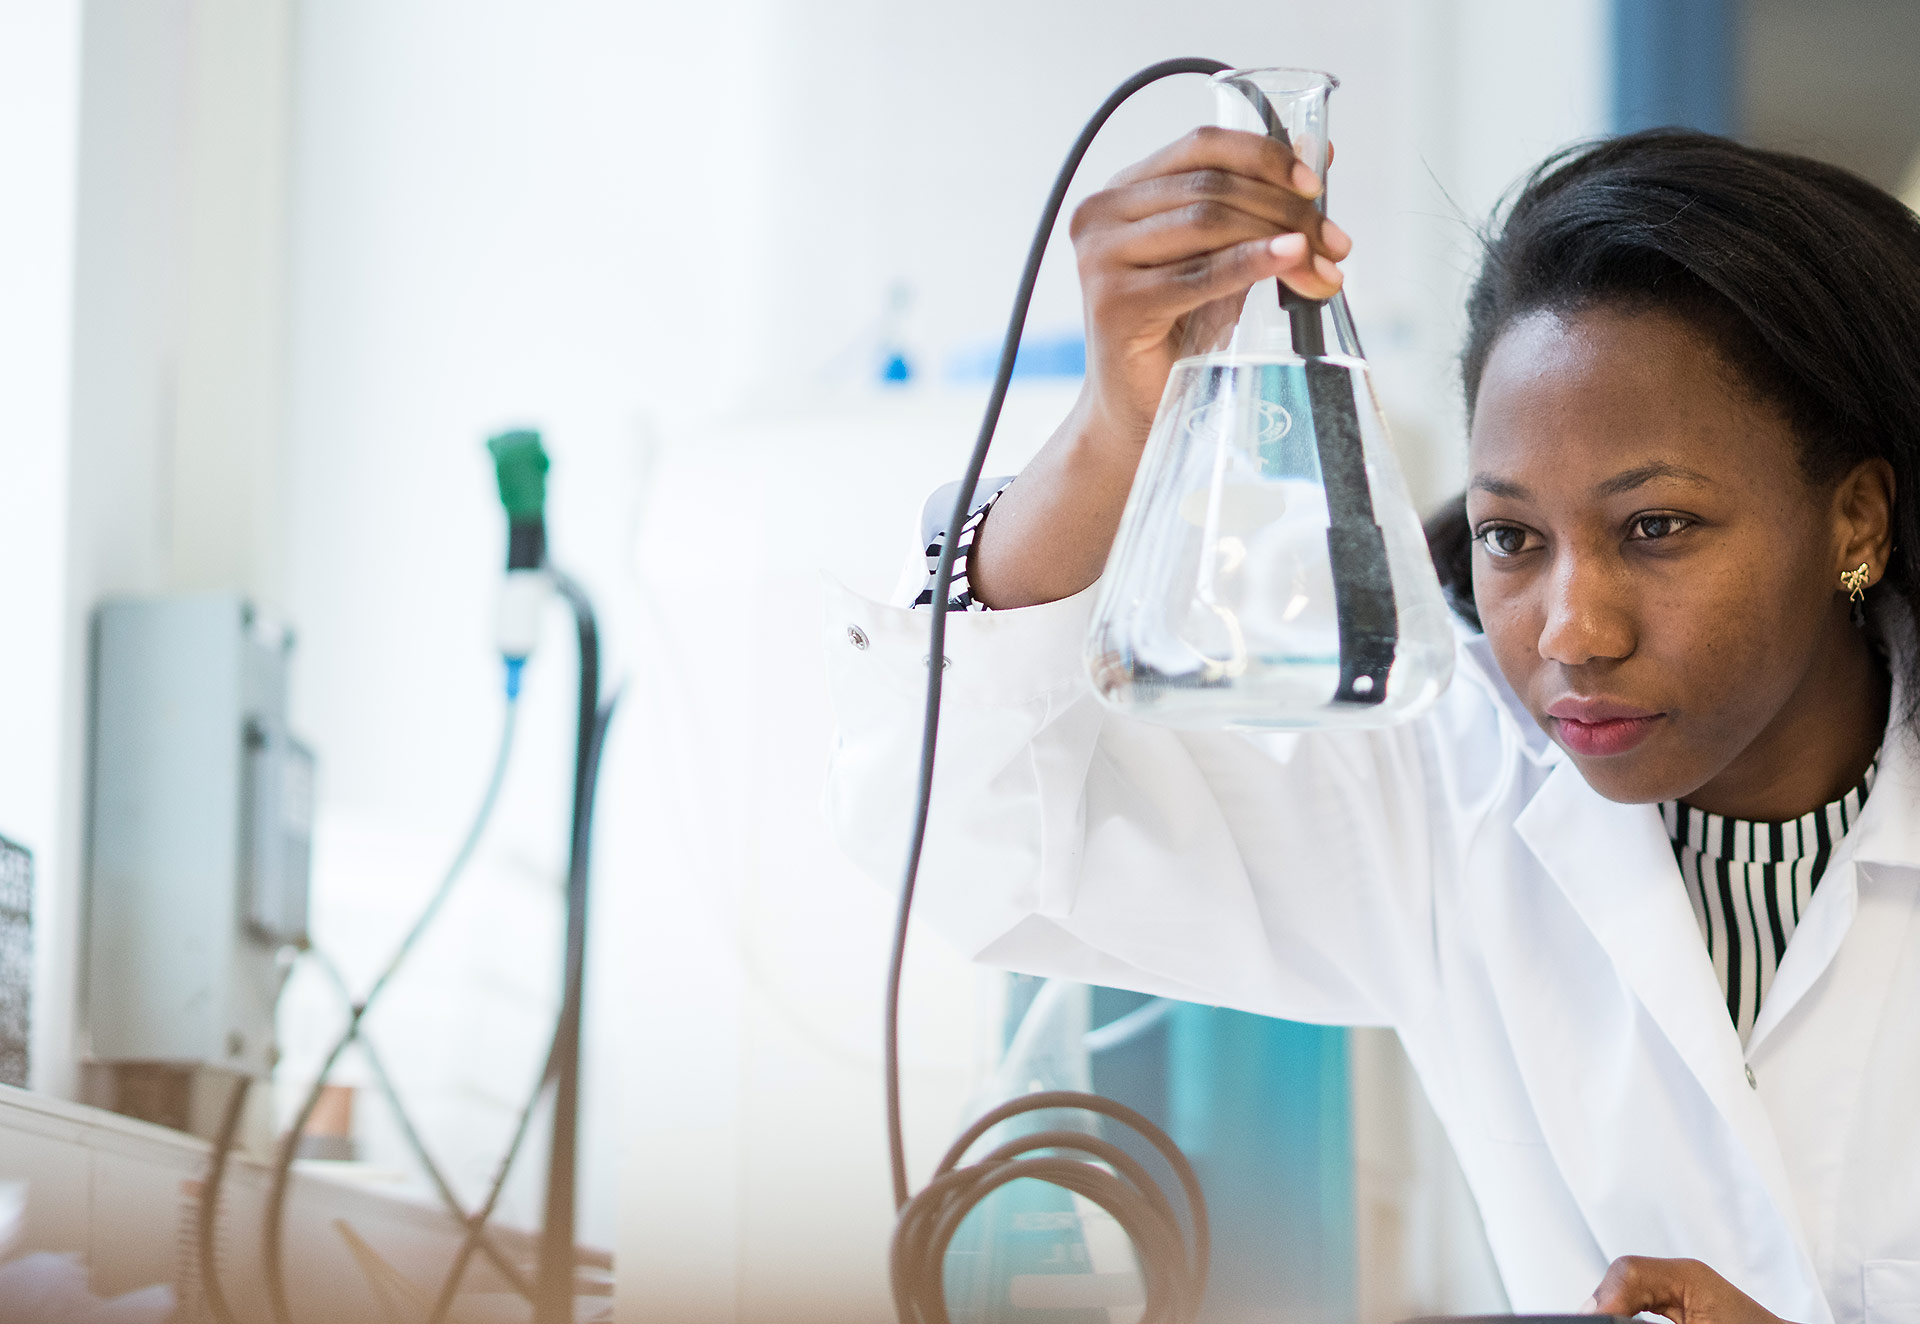 Claire Nakabugo in a white lab coat looking at vessel containing water in the lab during her master's course at Oxford